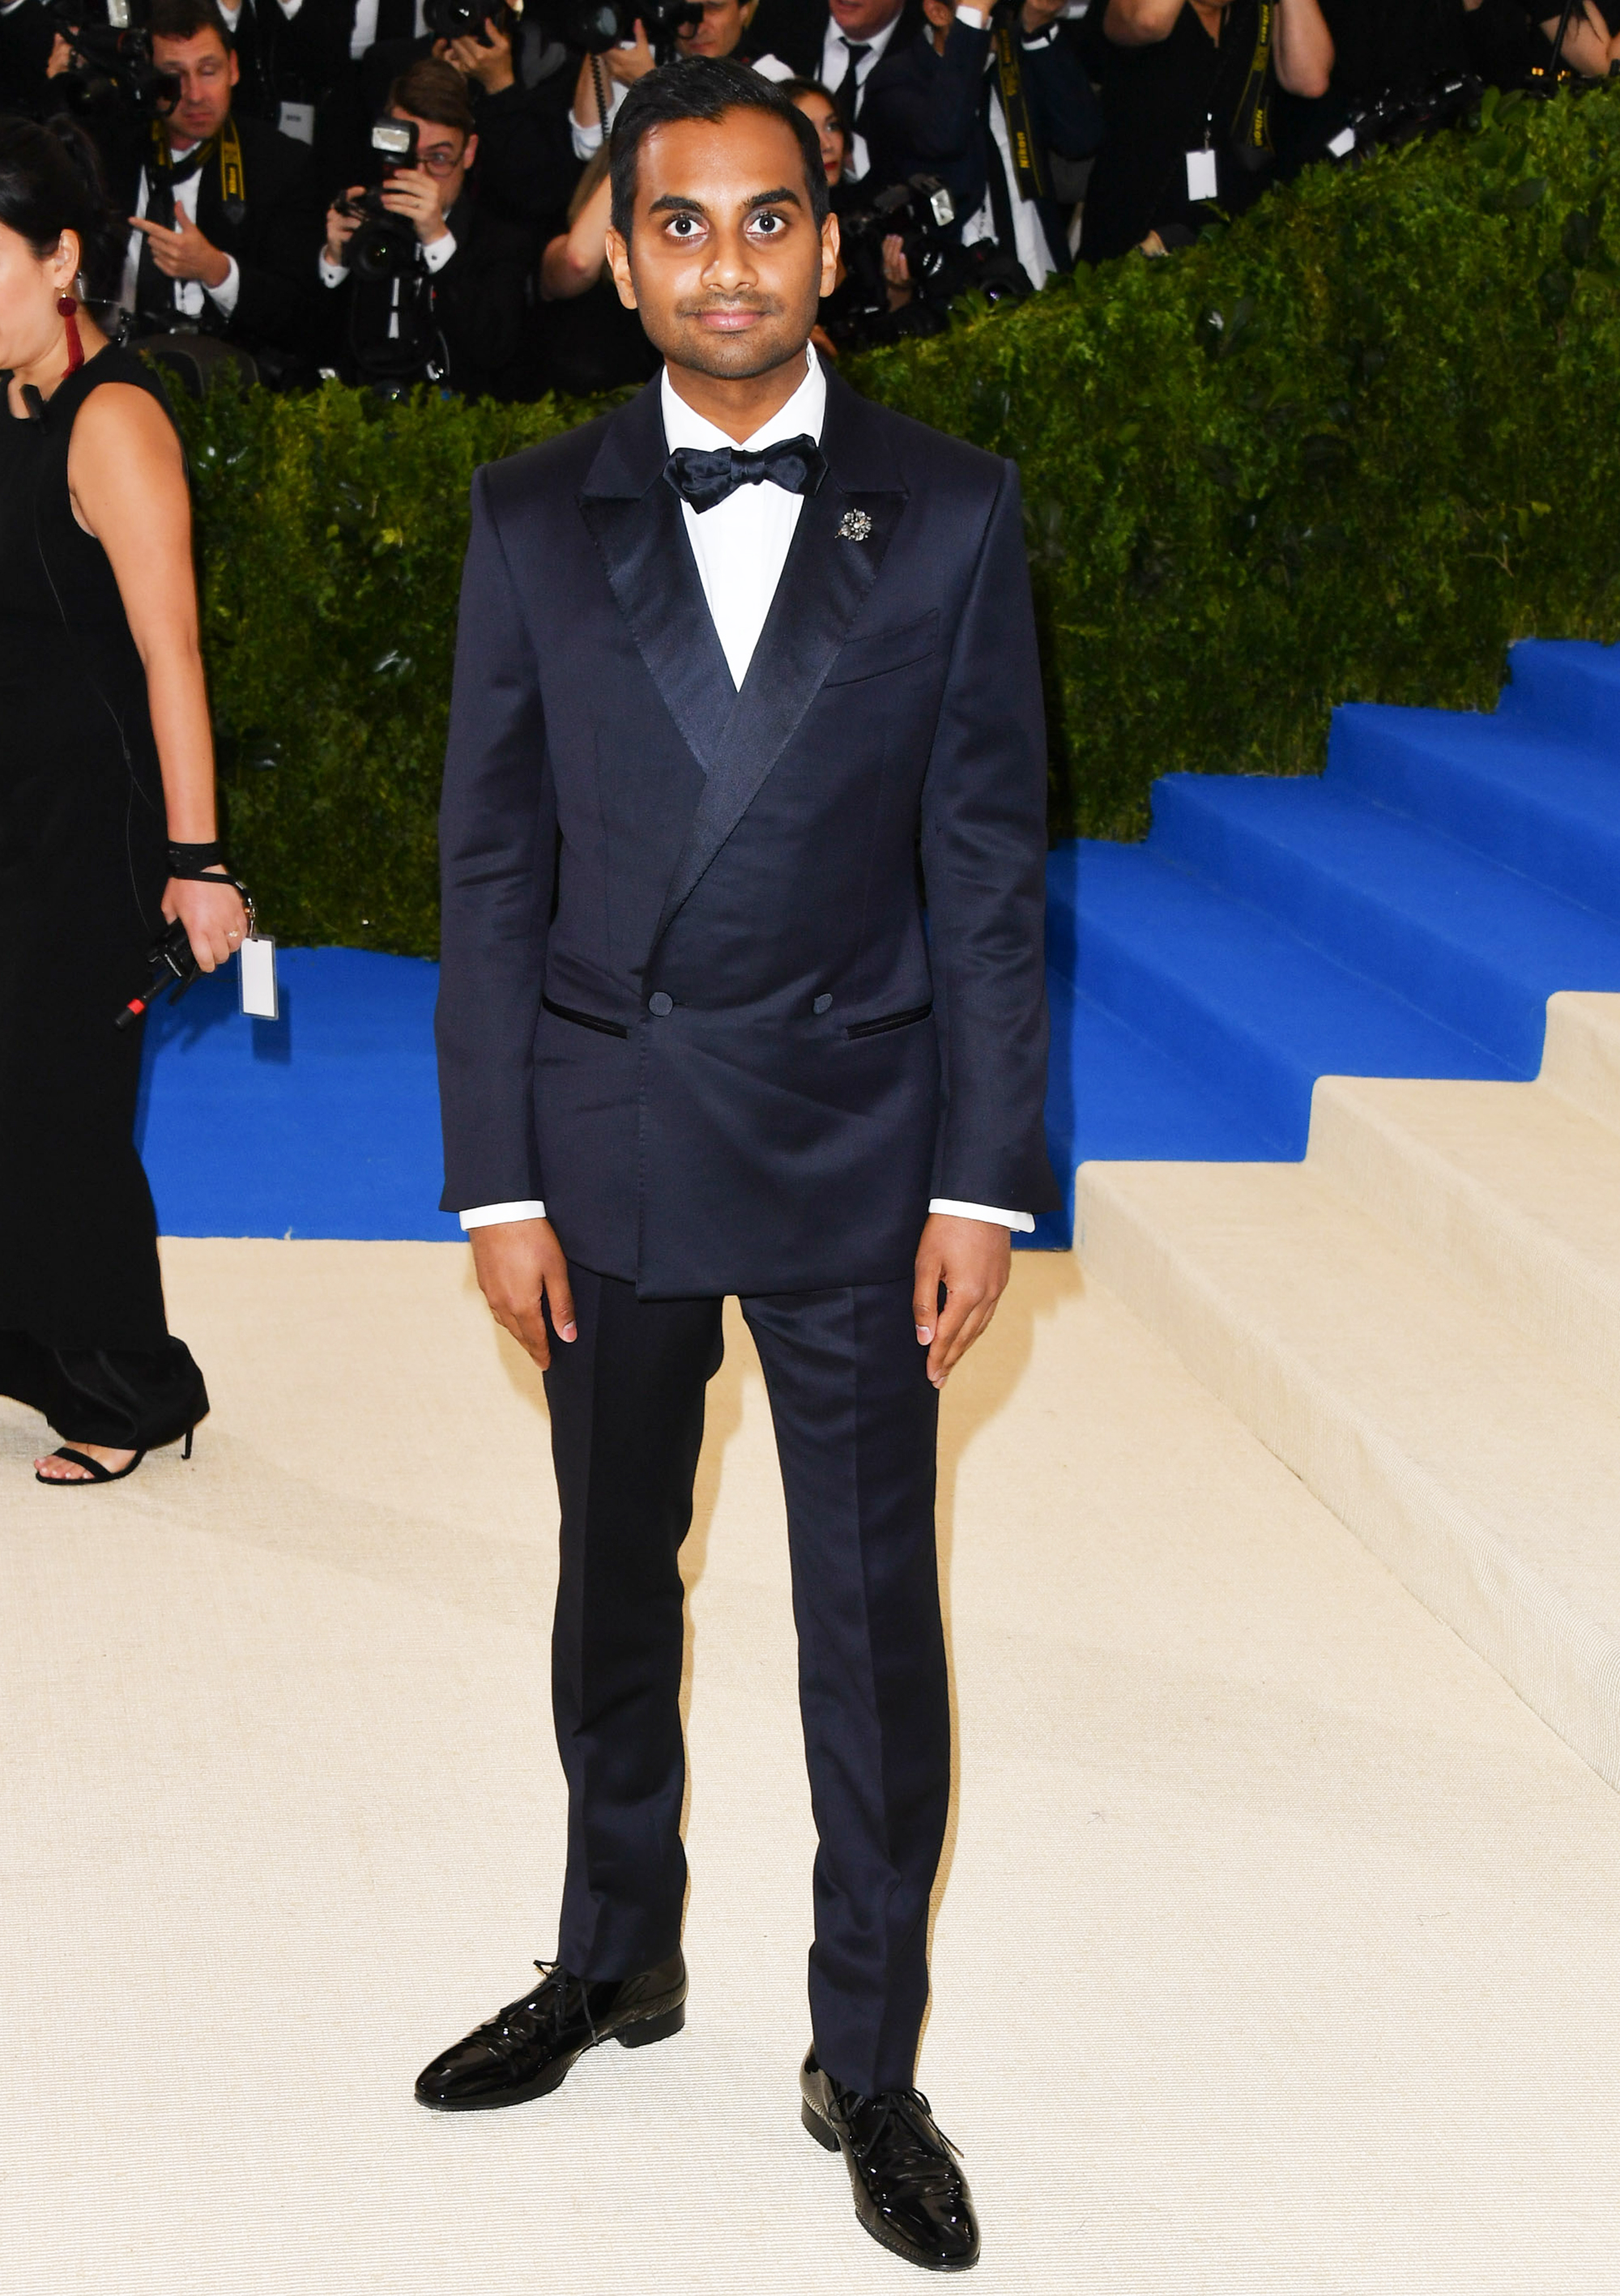 Aziz Ansari attends The Metropolitan Museum of Art's Costume Institute benefit gala celebrating the opening of the Rei Kawakubo/Comme des Garçons: Art of the In-Between exhibition in New York City, on May 1, 2017.